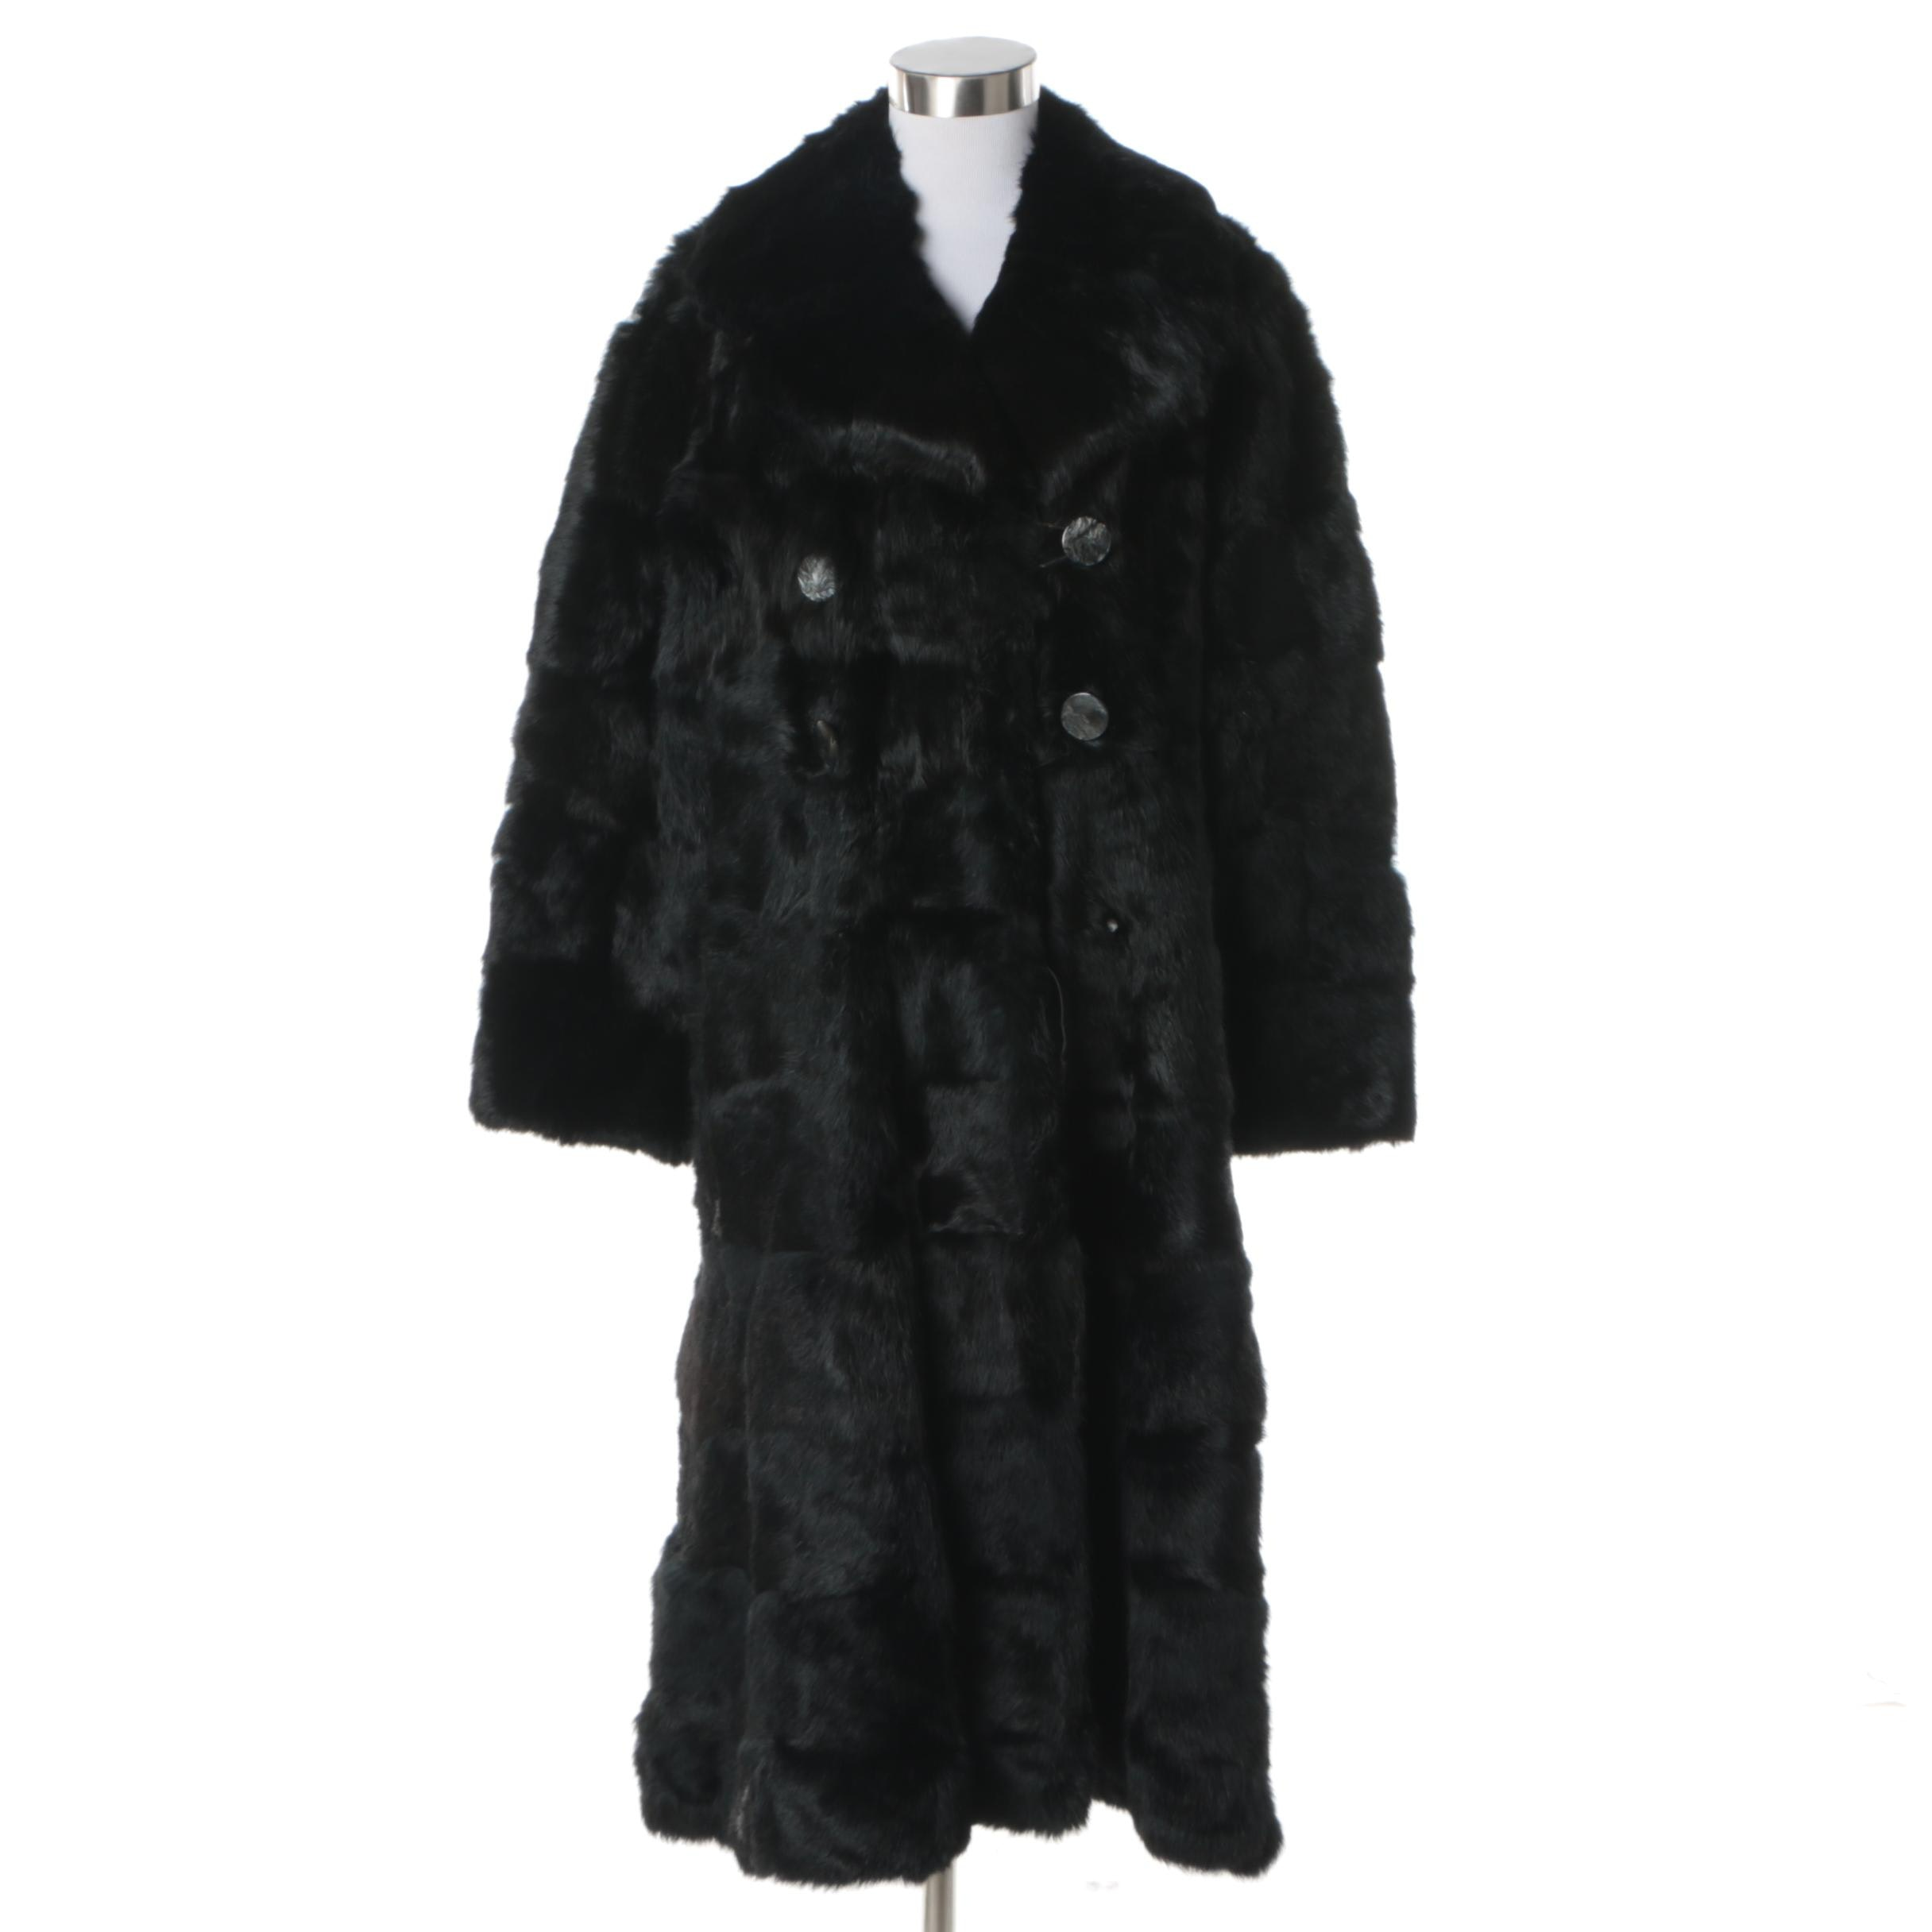 Women's Circa 1970s Vintage Black Rabbit Fur Coat